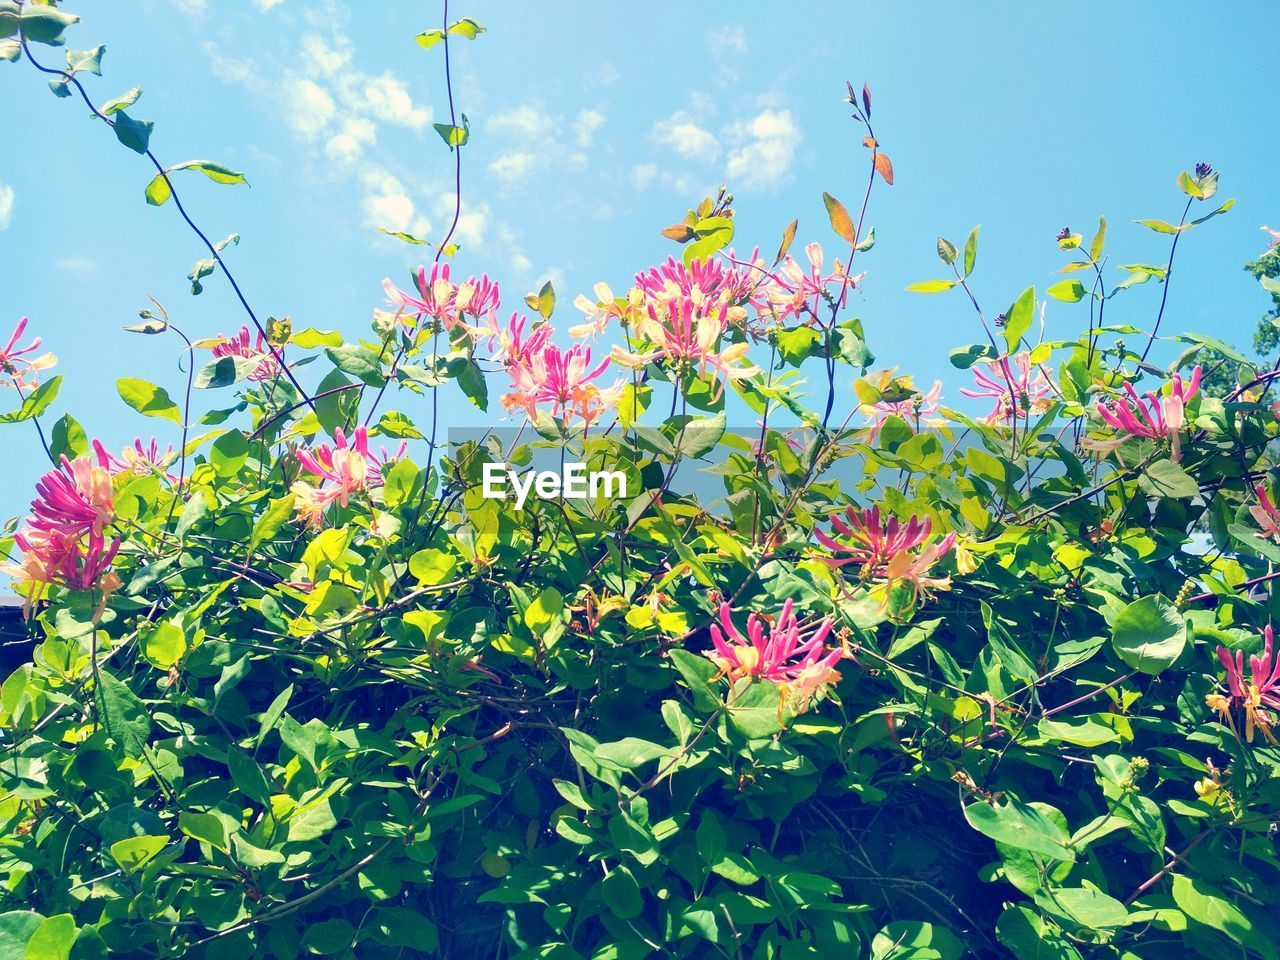 flower, growth, beauty in nature, nature, petal, fragility, plant, day, freshness, no people, outdoors, blooming, pink color, leaf, sunlight, sky, flower head, close-up